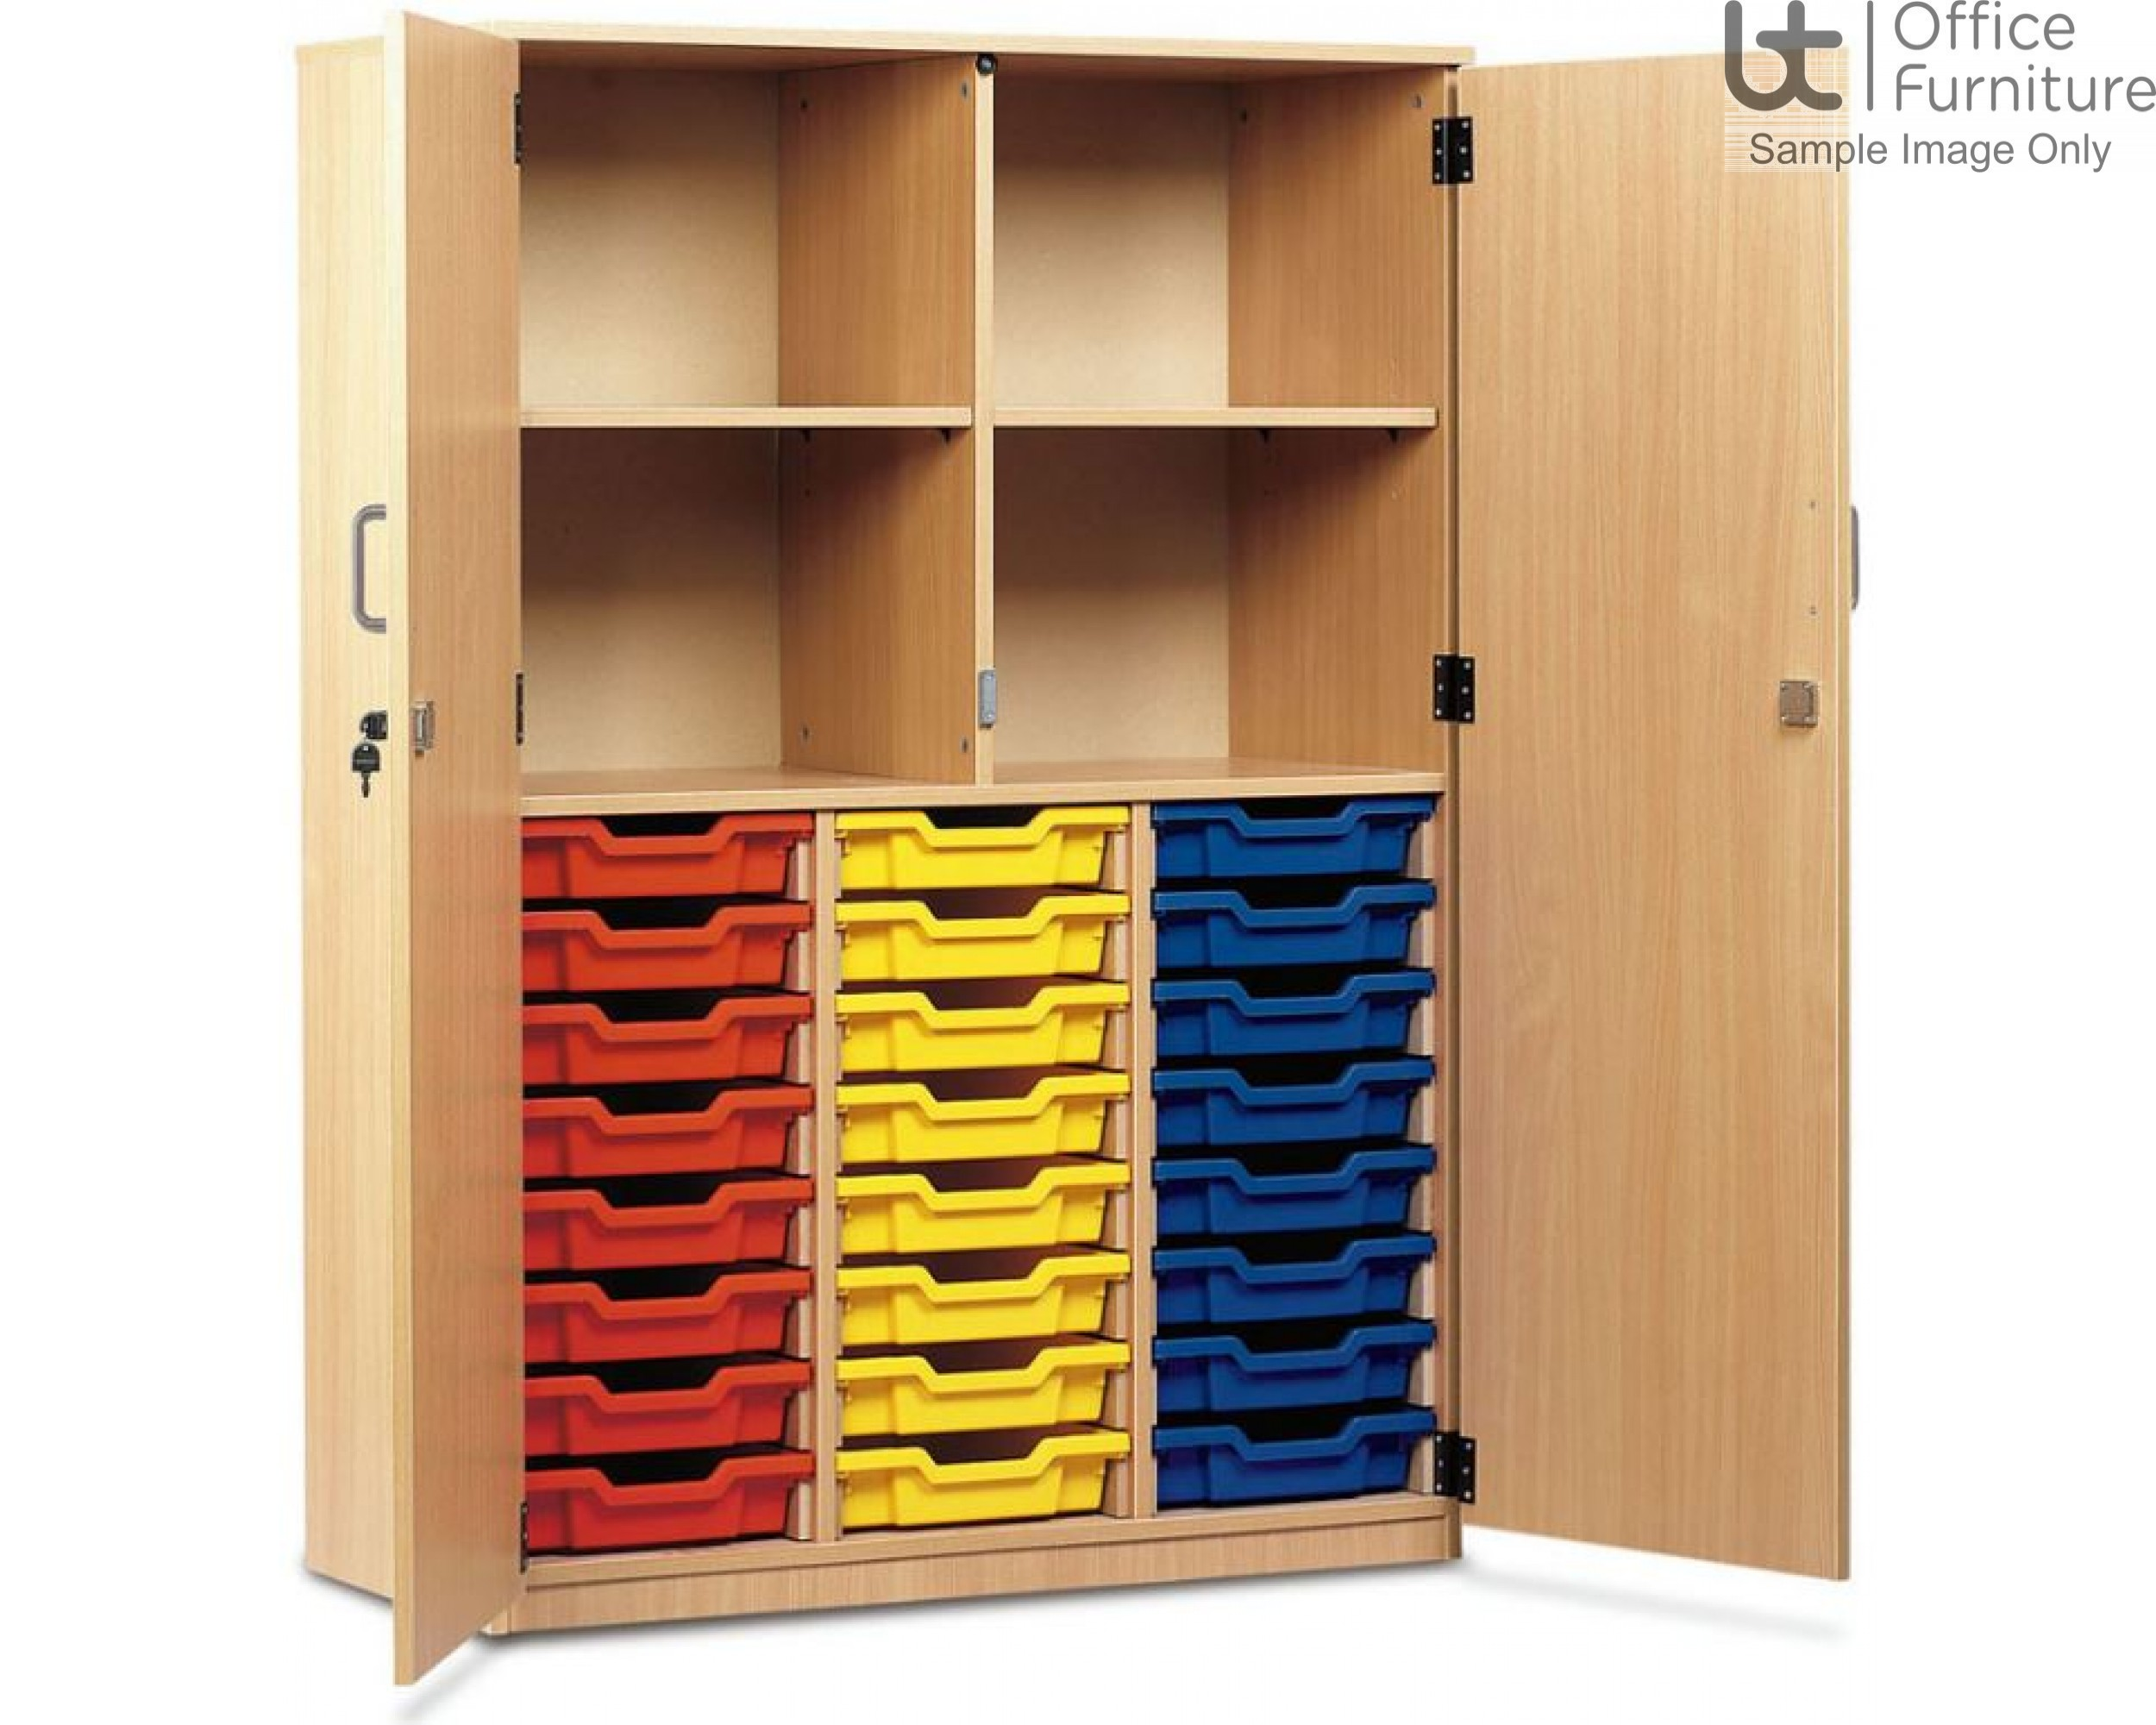 School Tray Storage - 24 Shallow Tray Fully Locking Doors Cupboard, Upper Section Has Four Compartments